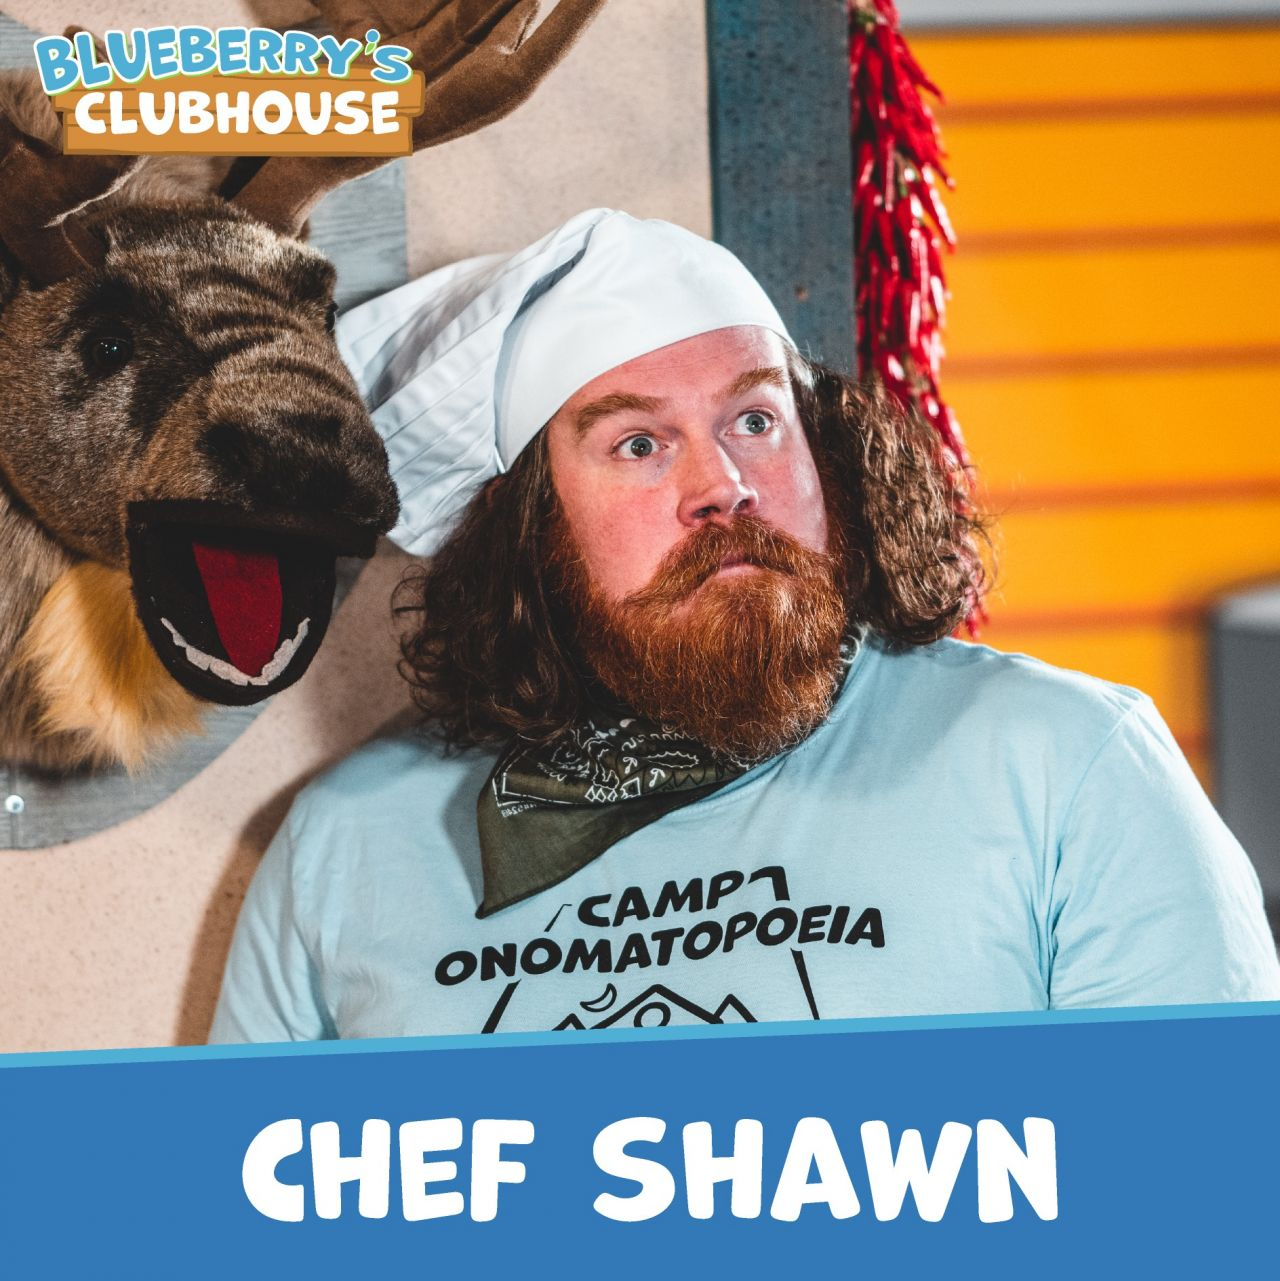 Chef Shawn, in light blue Camp Onomatopoeia, black bandana, and white toque, stands next to Mere the Moose in the mess hall